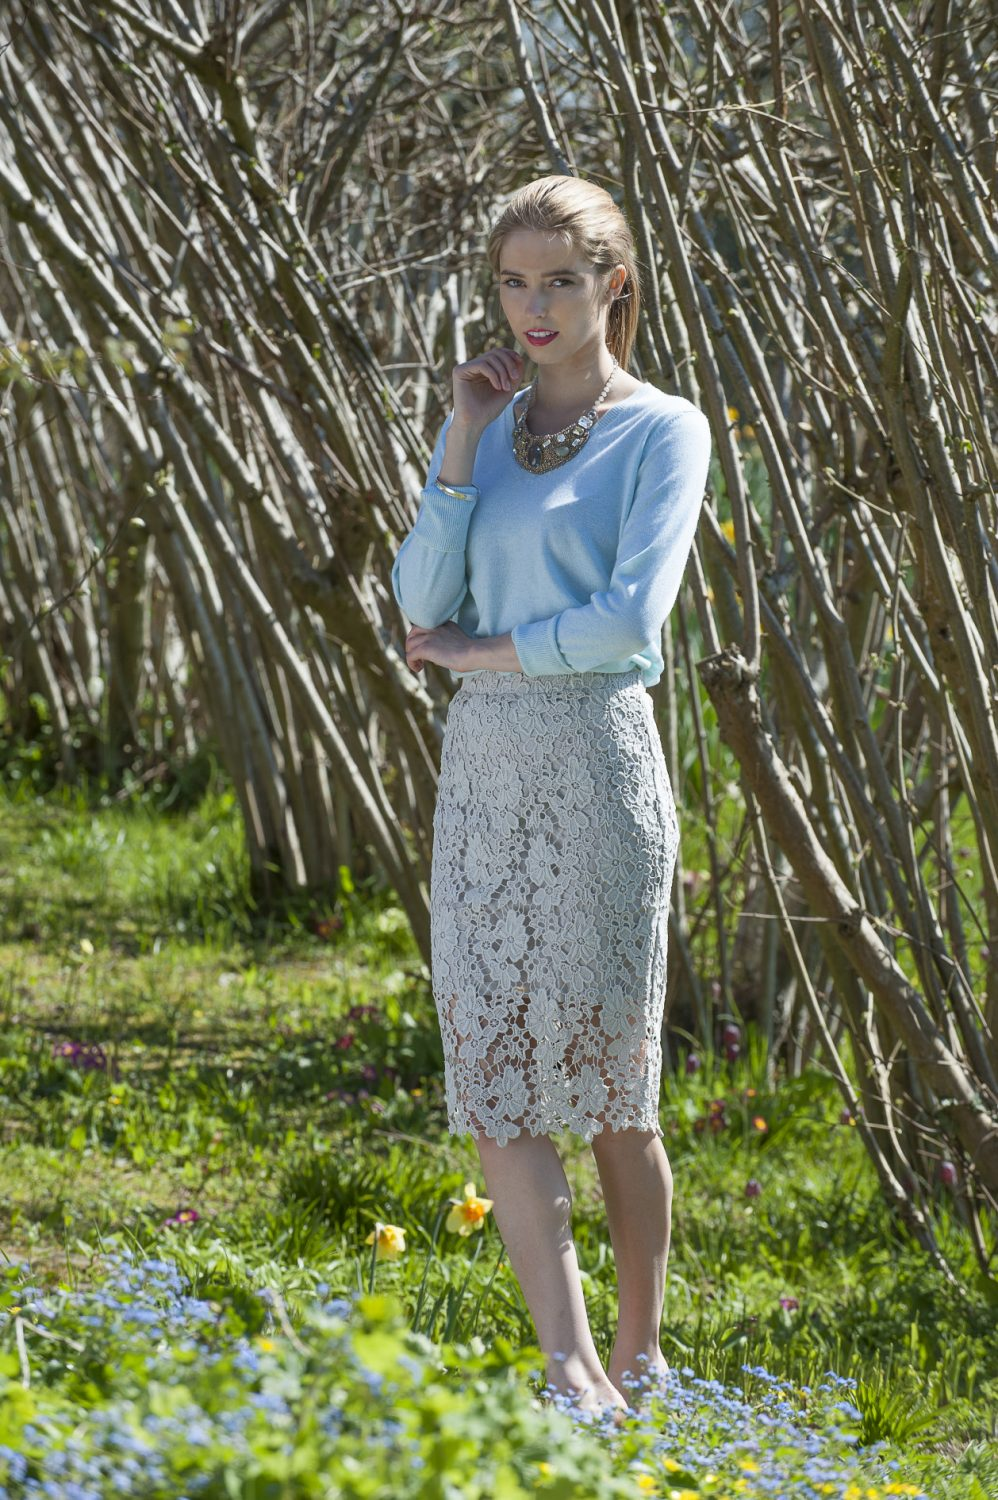 Second Female lace skirt, £84, Butterfly necklace, £92, Odyl, Cranbrook 01580 714907 www.odyl.co.uk; Cocoa Cashmere jumper, £157, Darcey, Heathfield & Lewes 0800 111 4974 www.darcey.co.uk